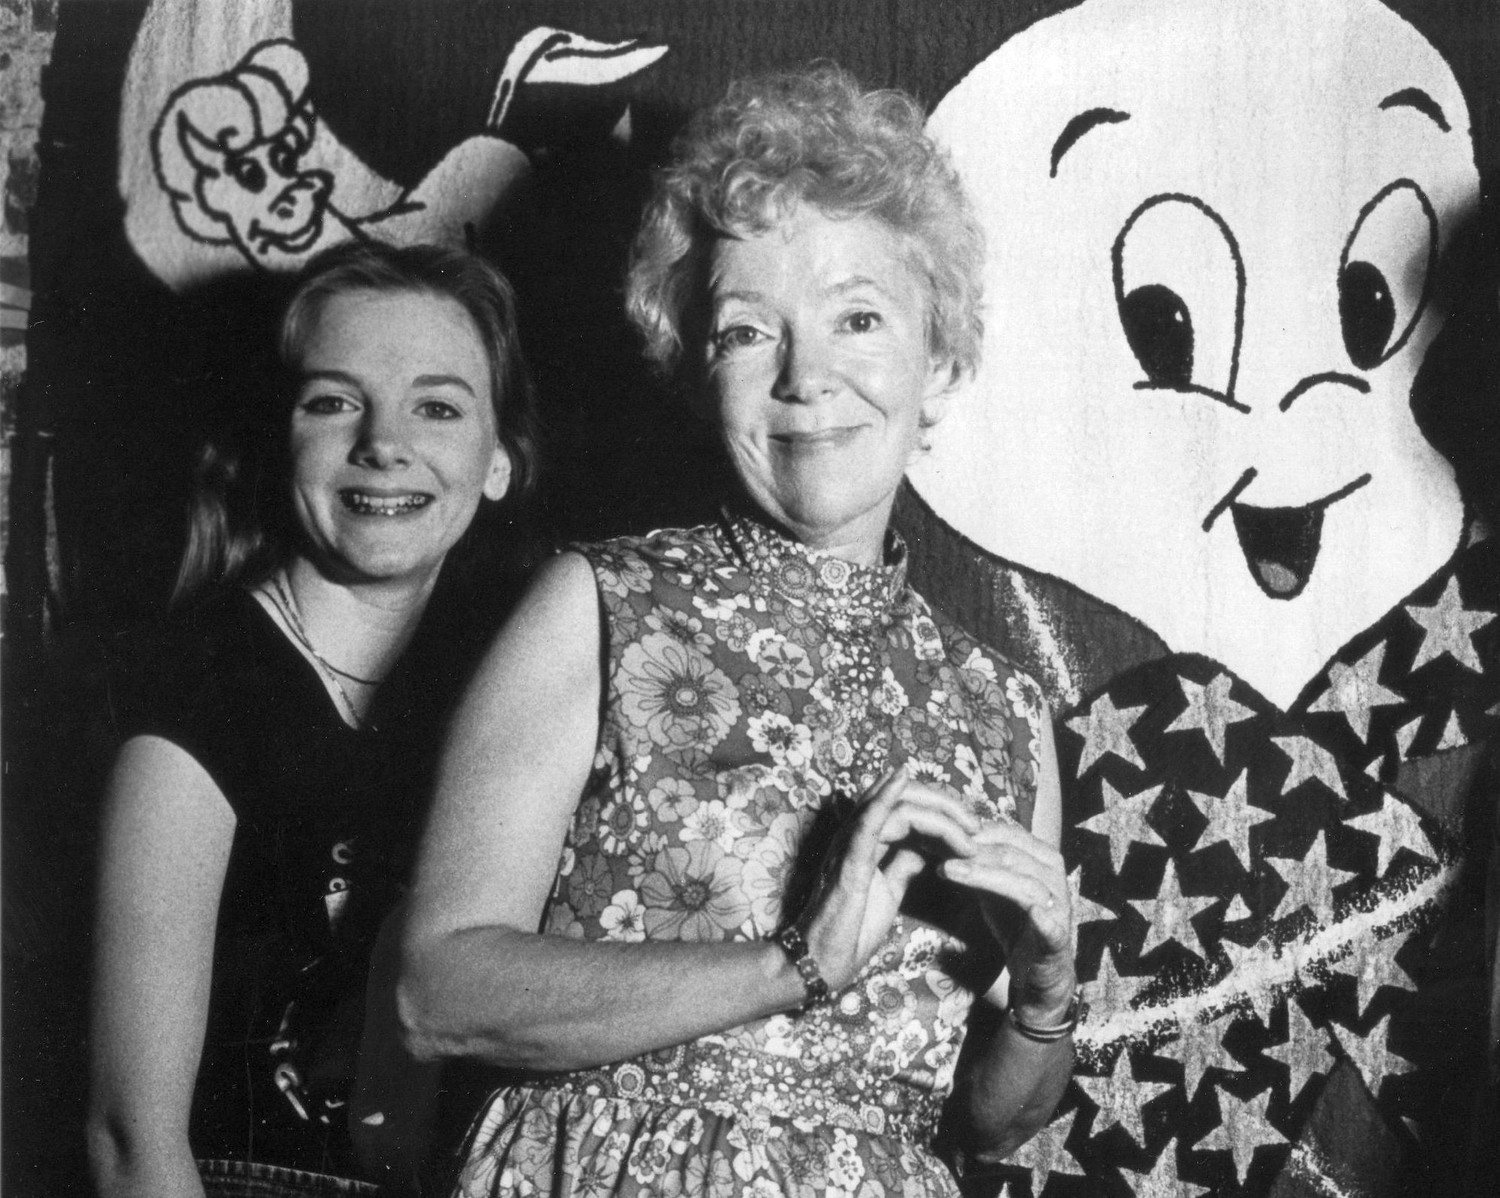 Alison Arngrim and mother Norma Macmilllan at a Hollywood salute to Casper.